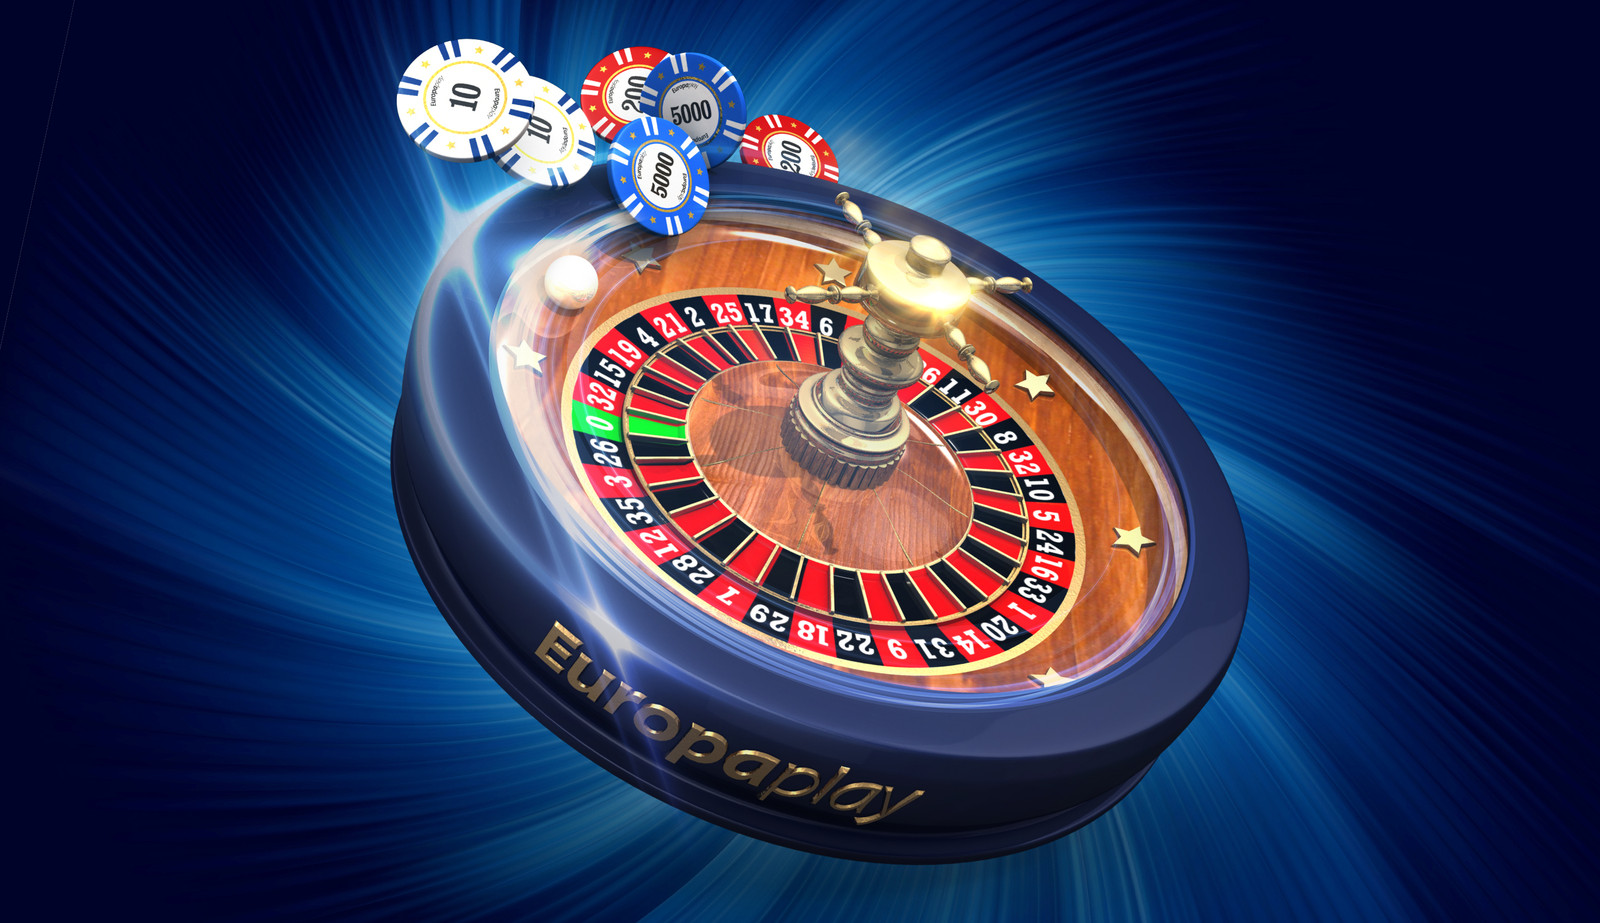 Roulette electronique au casino